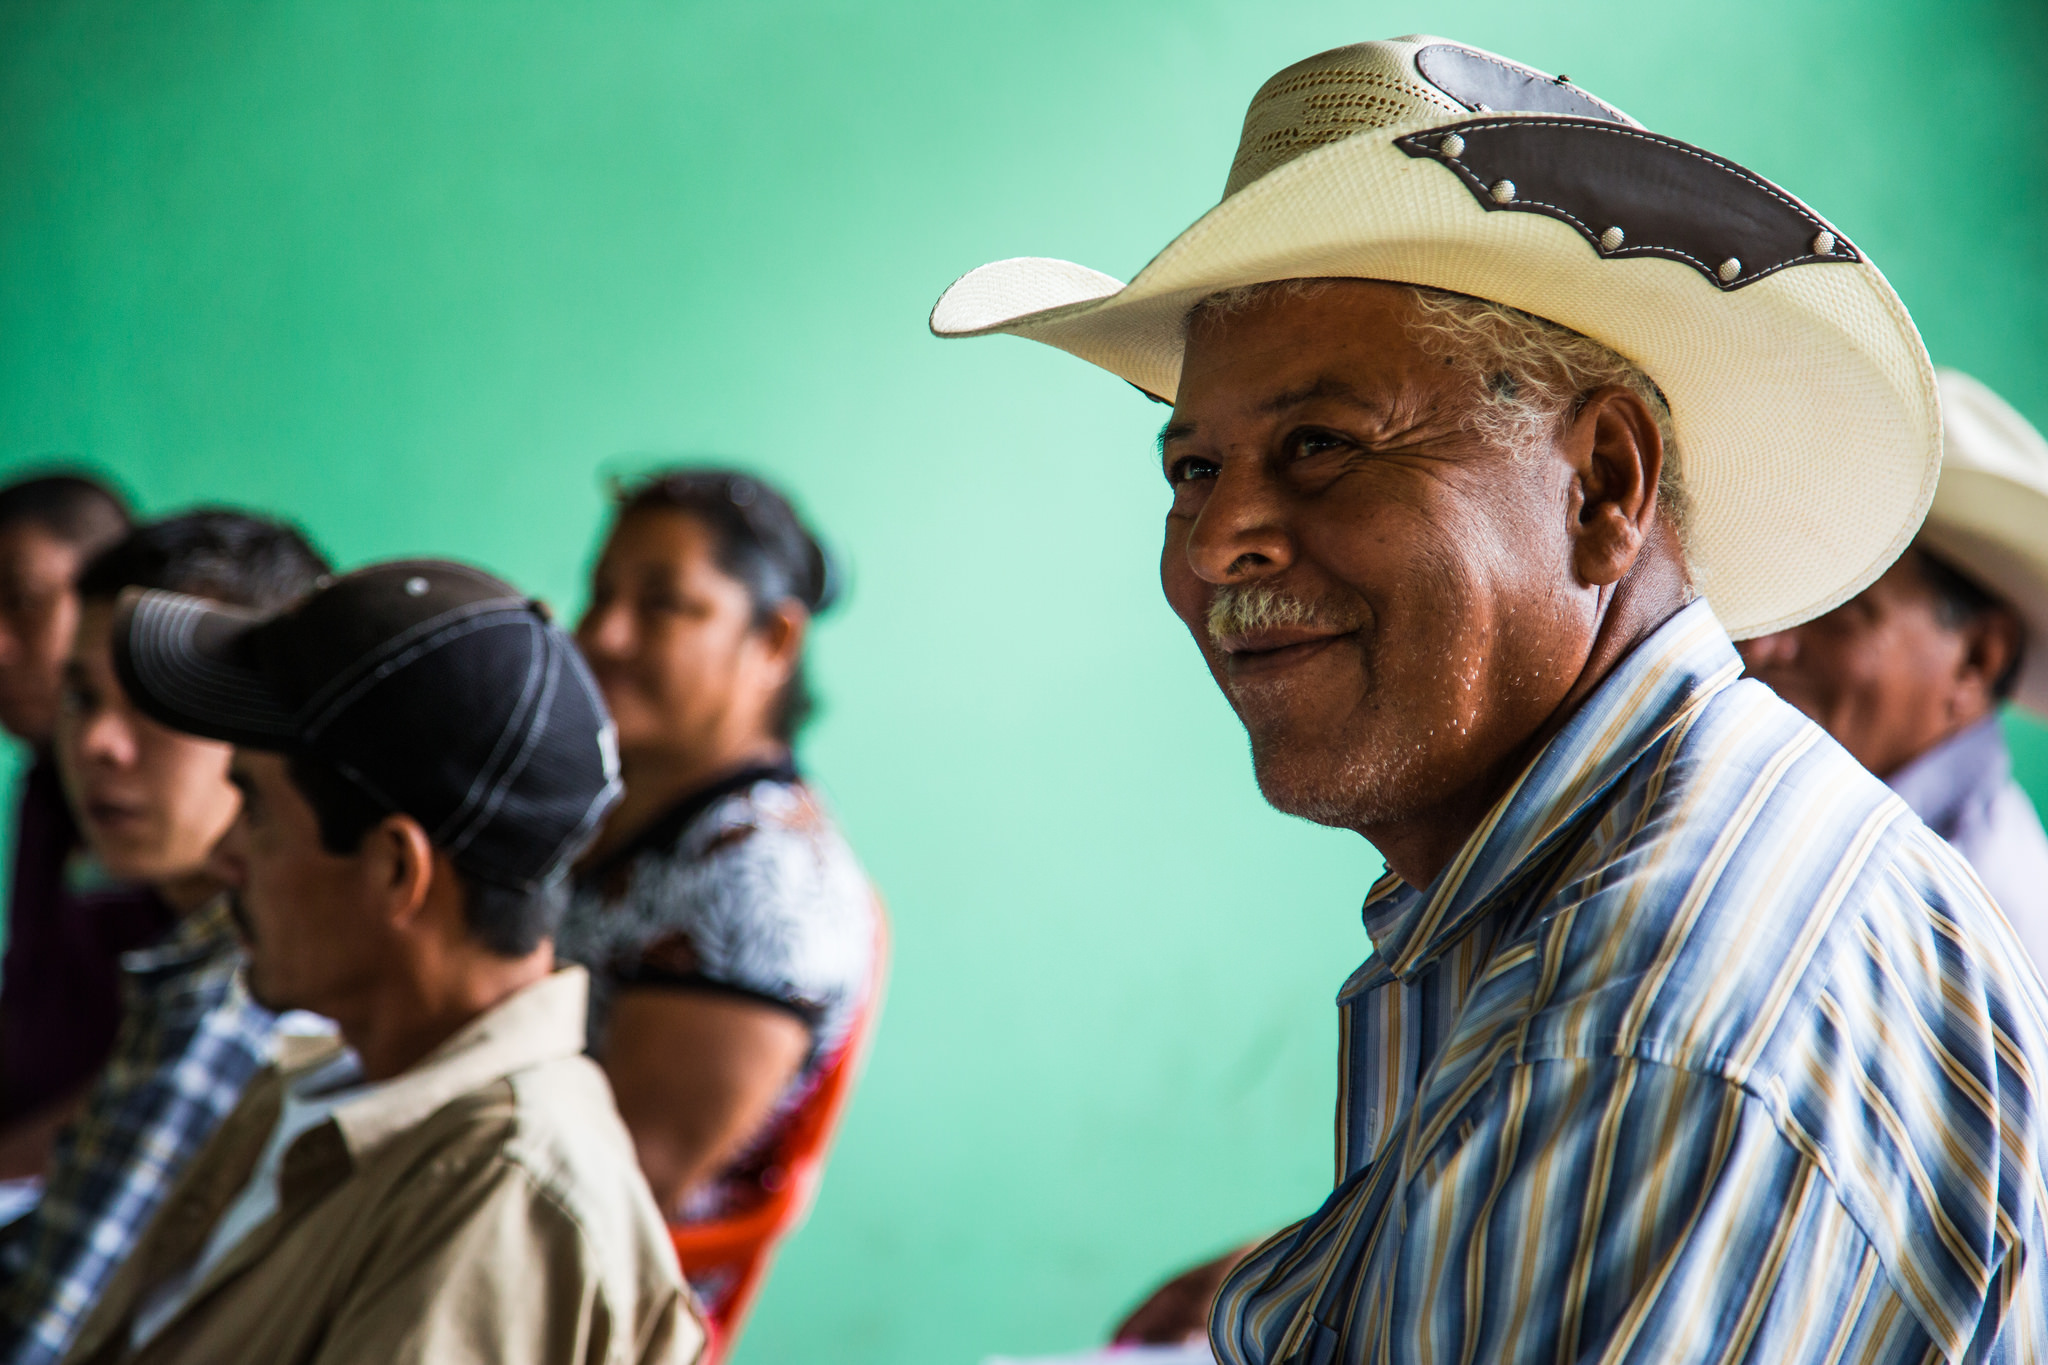 A male Honduran farmer wearing a blue and yellow striped collared shirt and cowboy hat is in focus in front of other farmers also seated in plastic chairs in front of a green wall in an outdoor classroom space in southern Honduras.